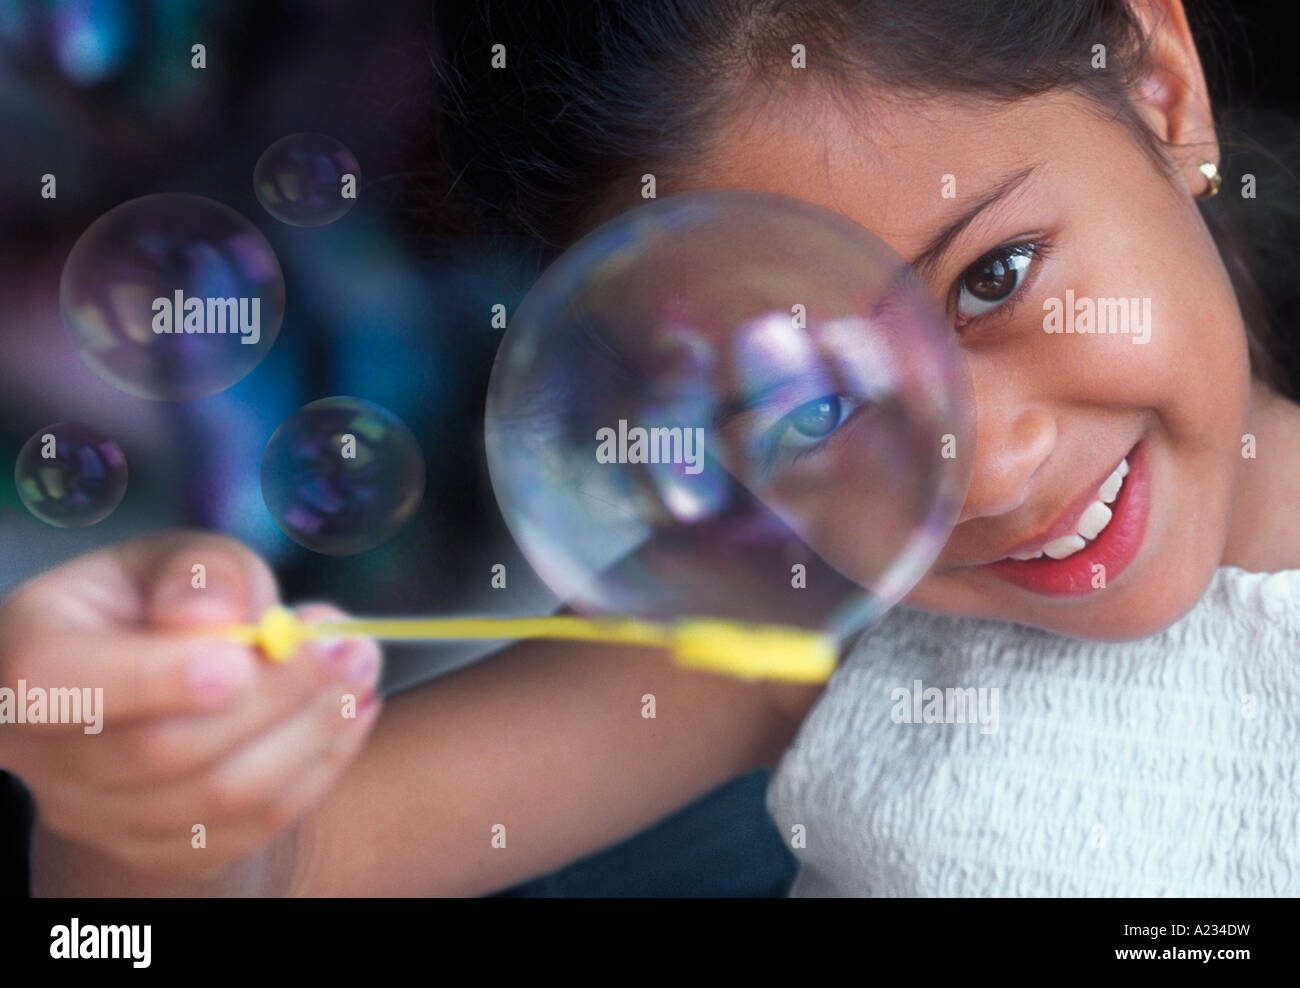 Pretty Young Girl Playful Playing Games Smiling Blowing Bubbles Sandra Baker - Stock Image